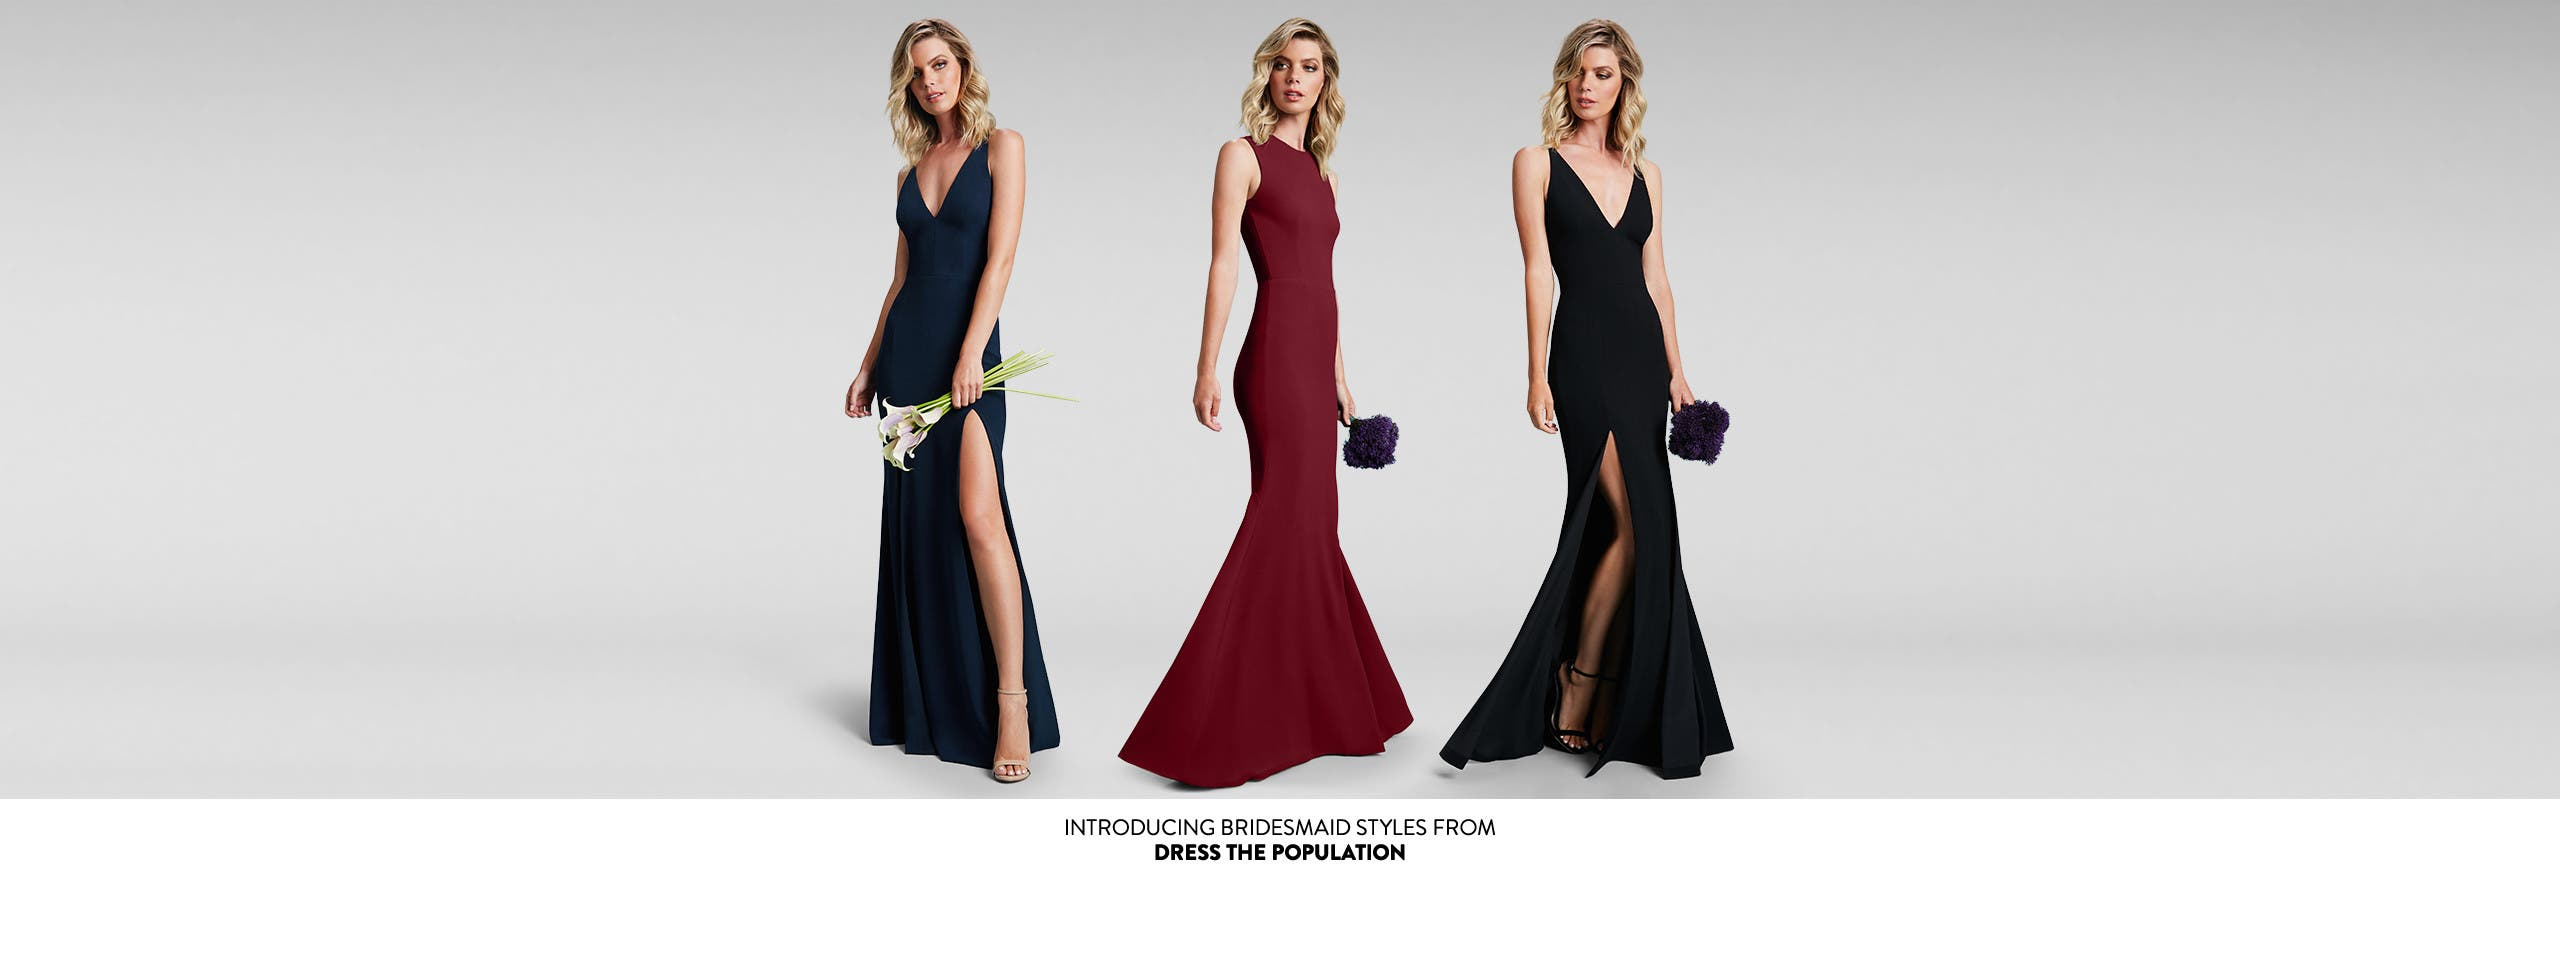 Introducing bridesmaid dresses from Dress the Population.